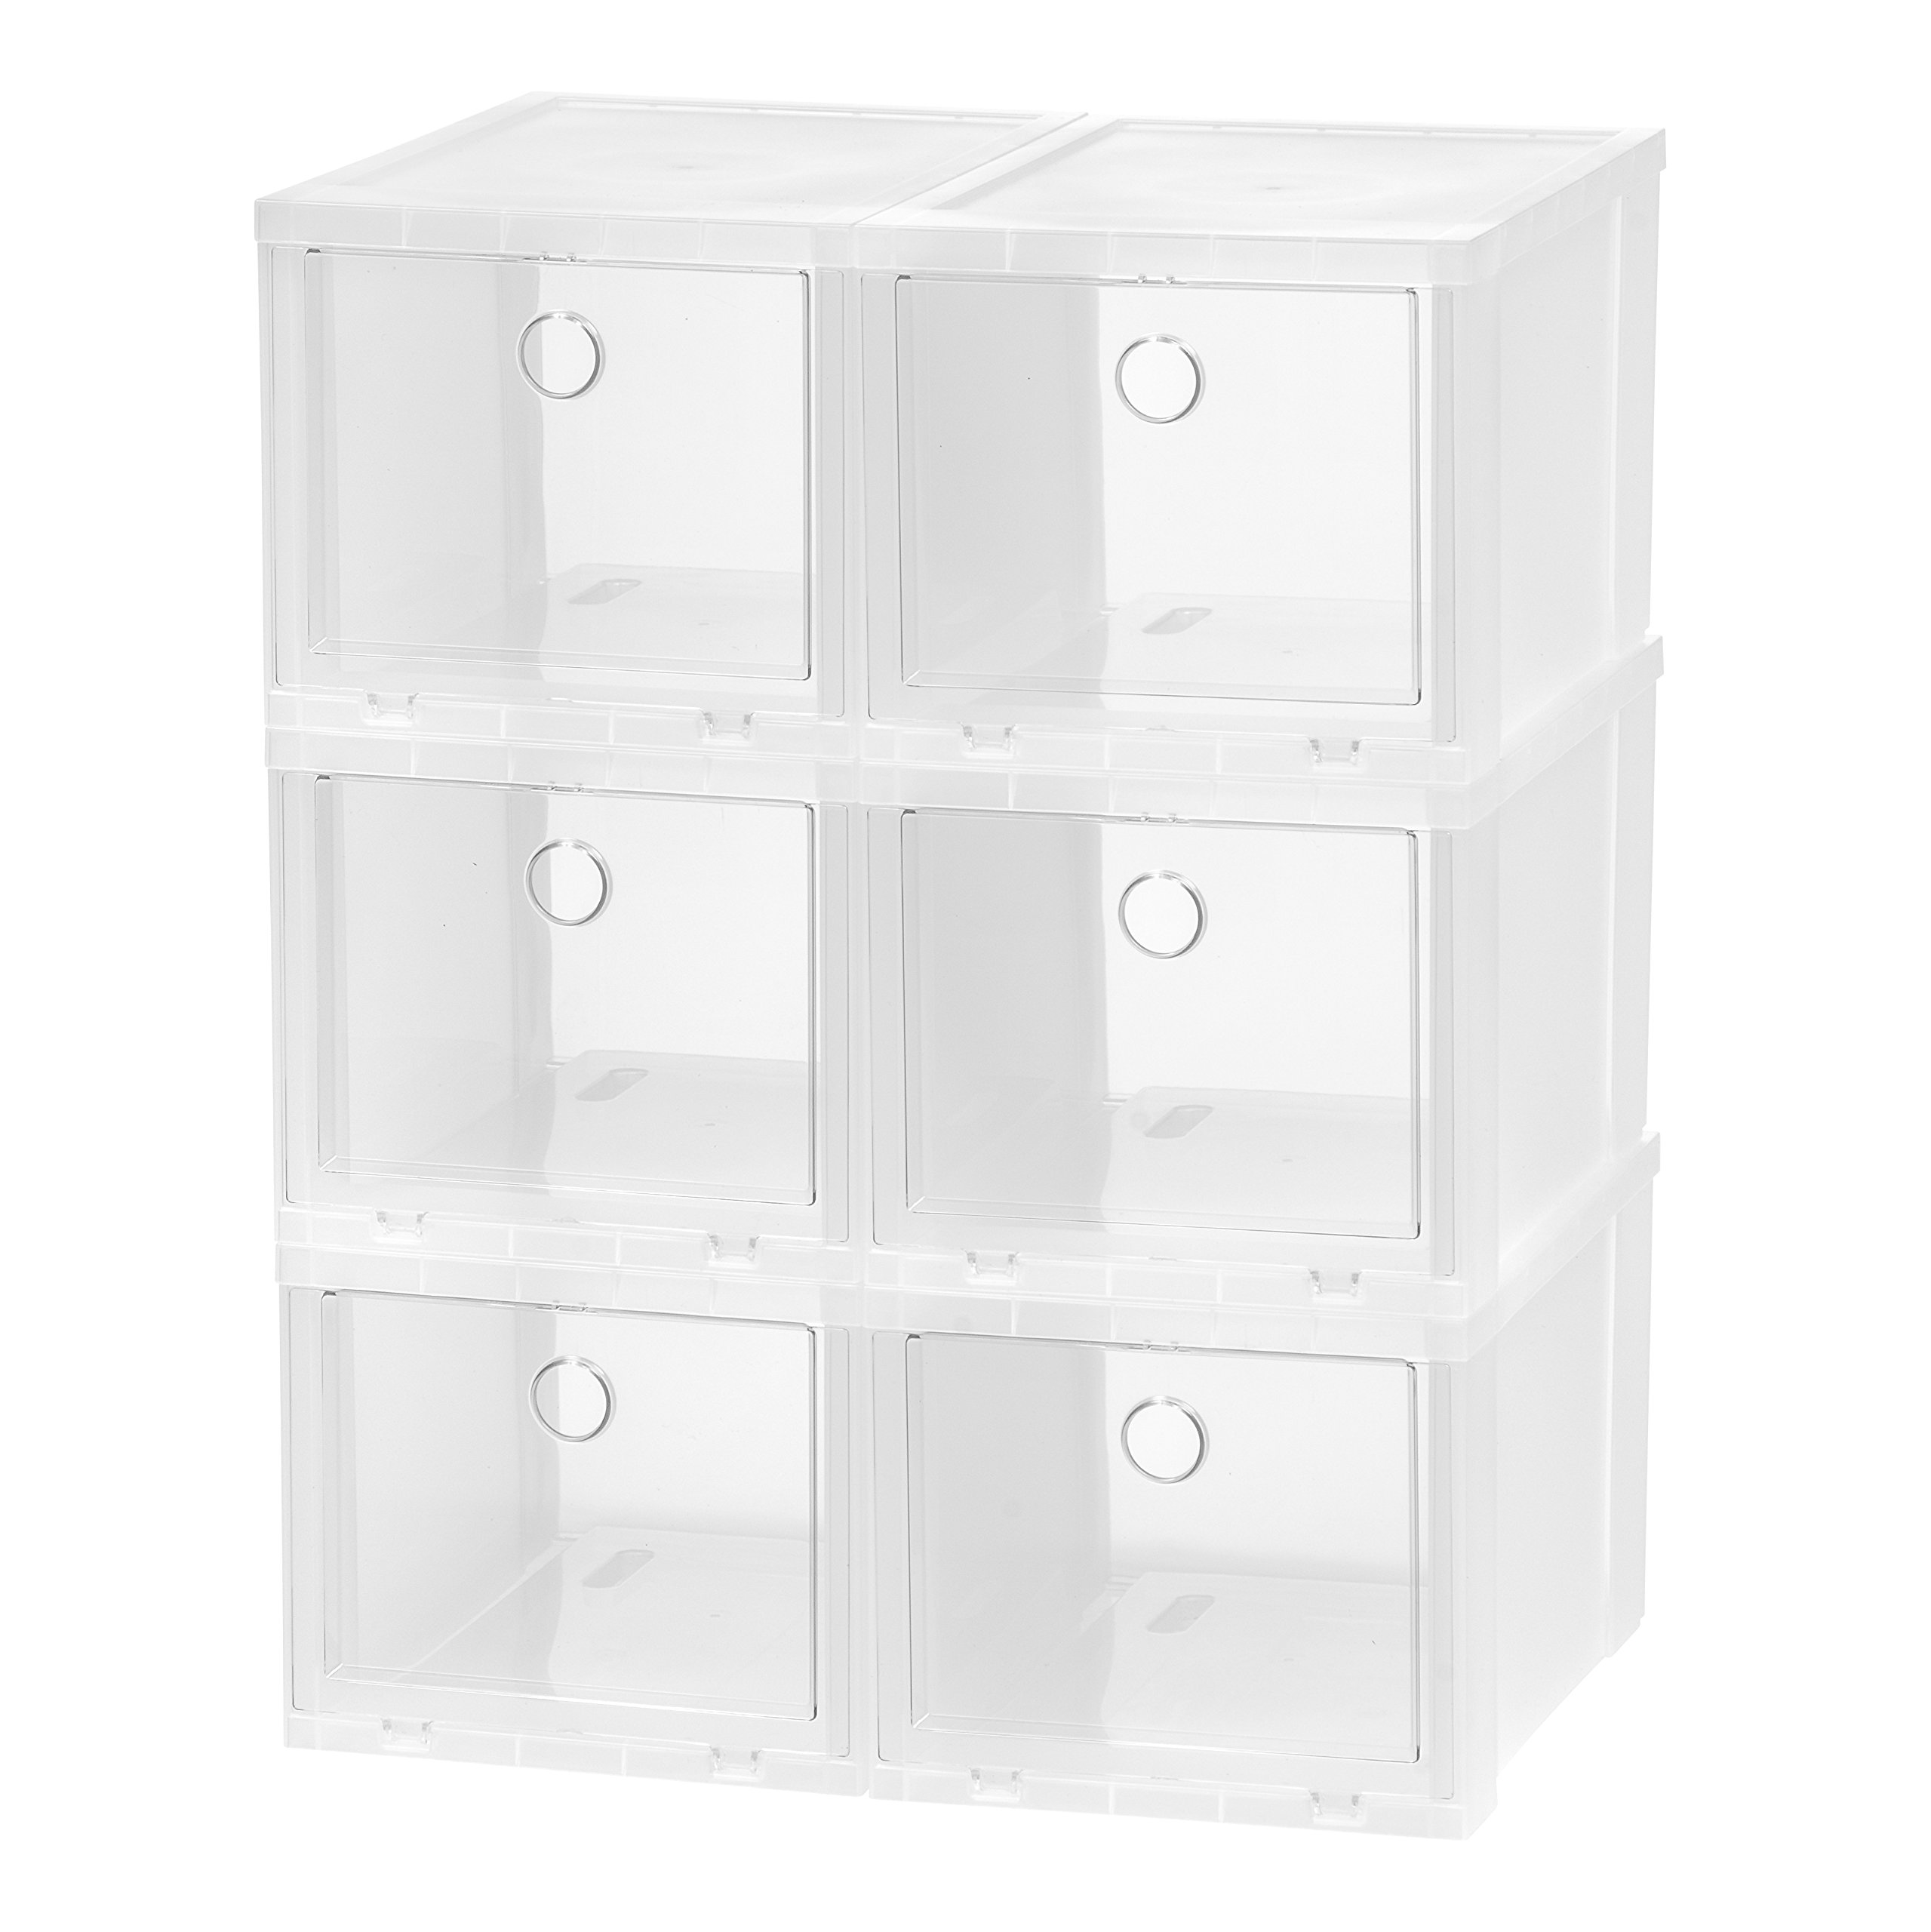 IRIS High Clear Pull Down Front Access Shoe Box, 6 Pack